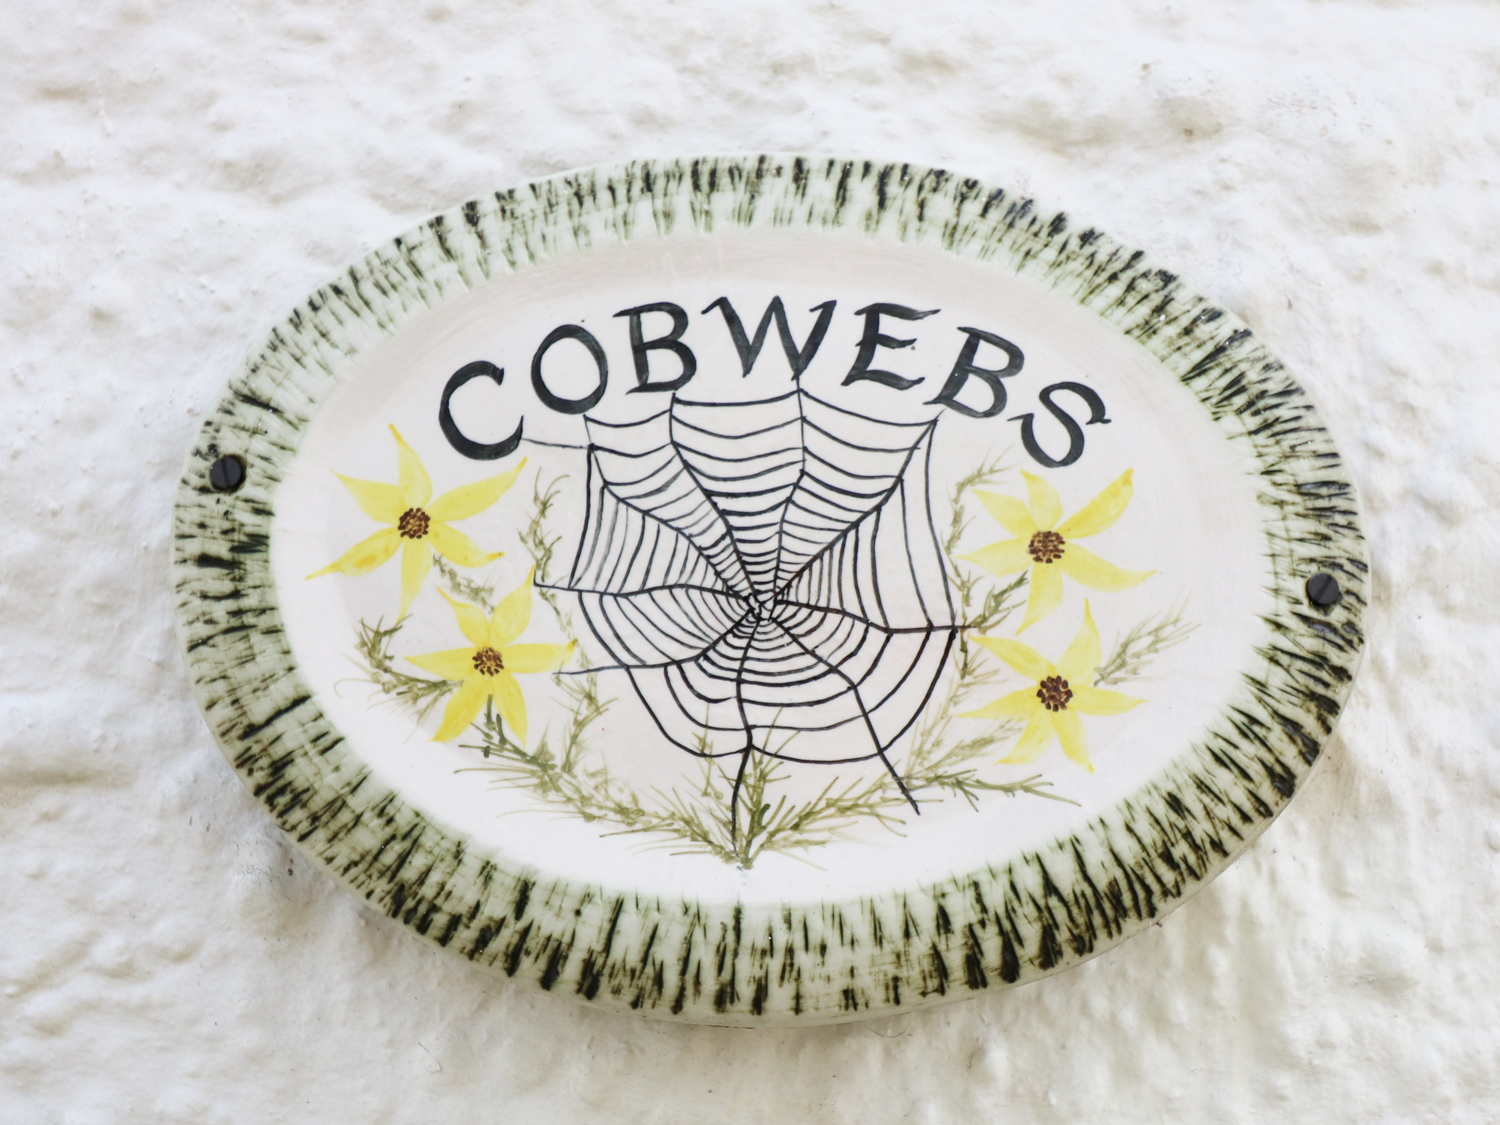 Cobwebs Cottage